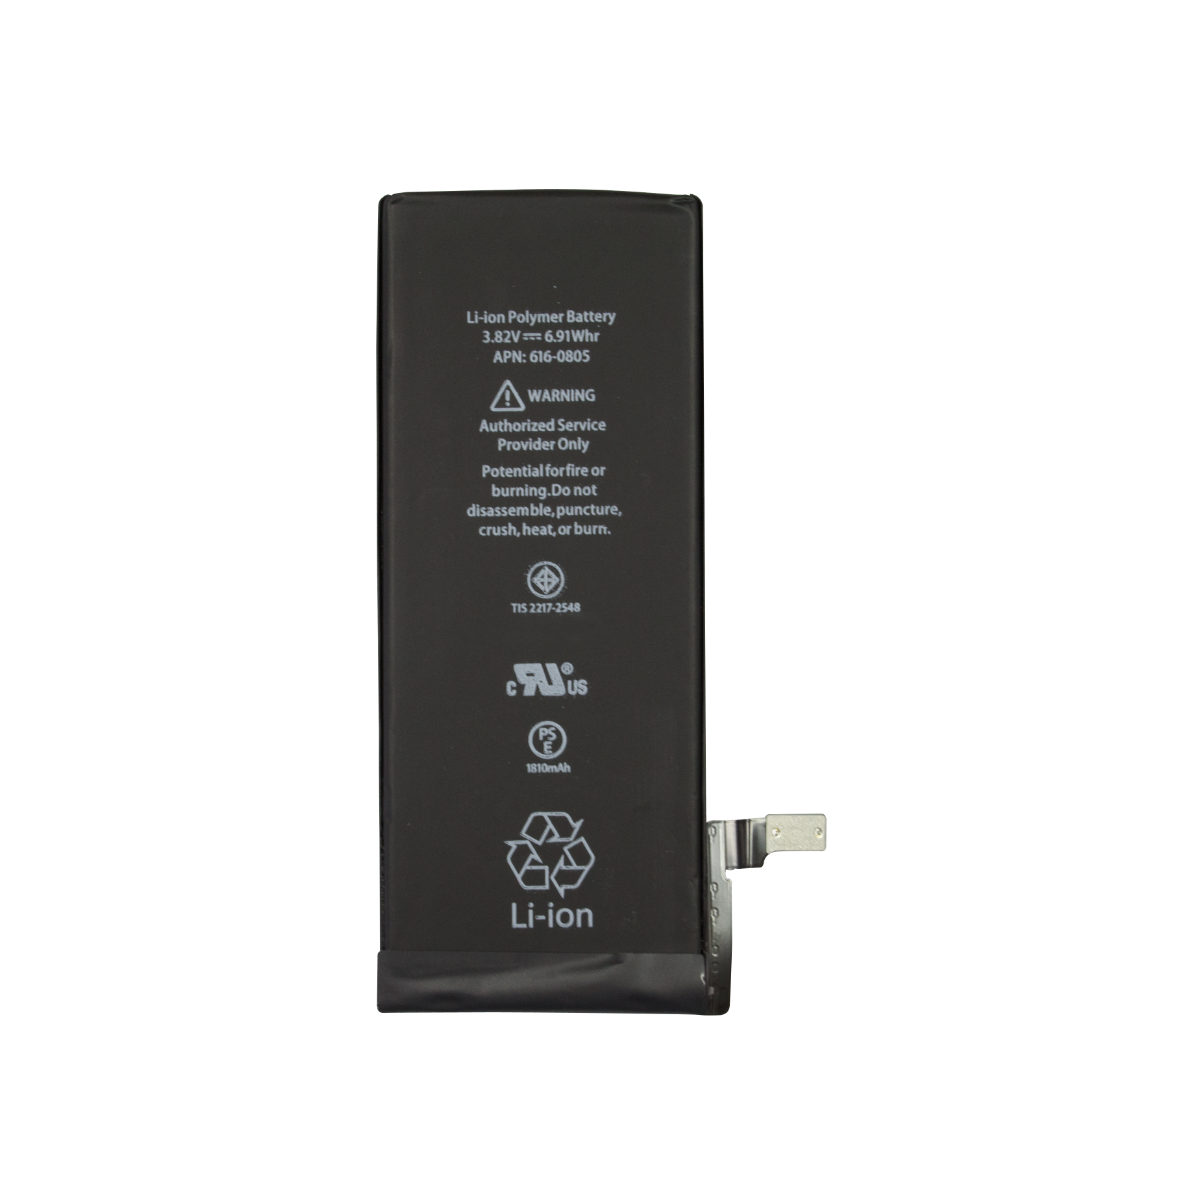 Batterie Li-Ion Polymer 3.82 Volts 6.91 Whr 1810 mAh